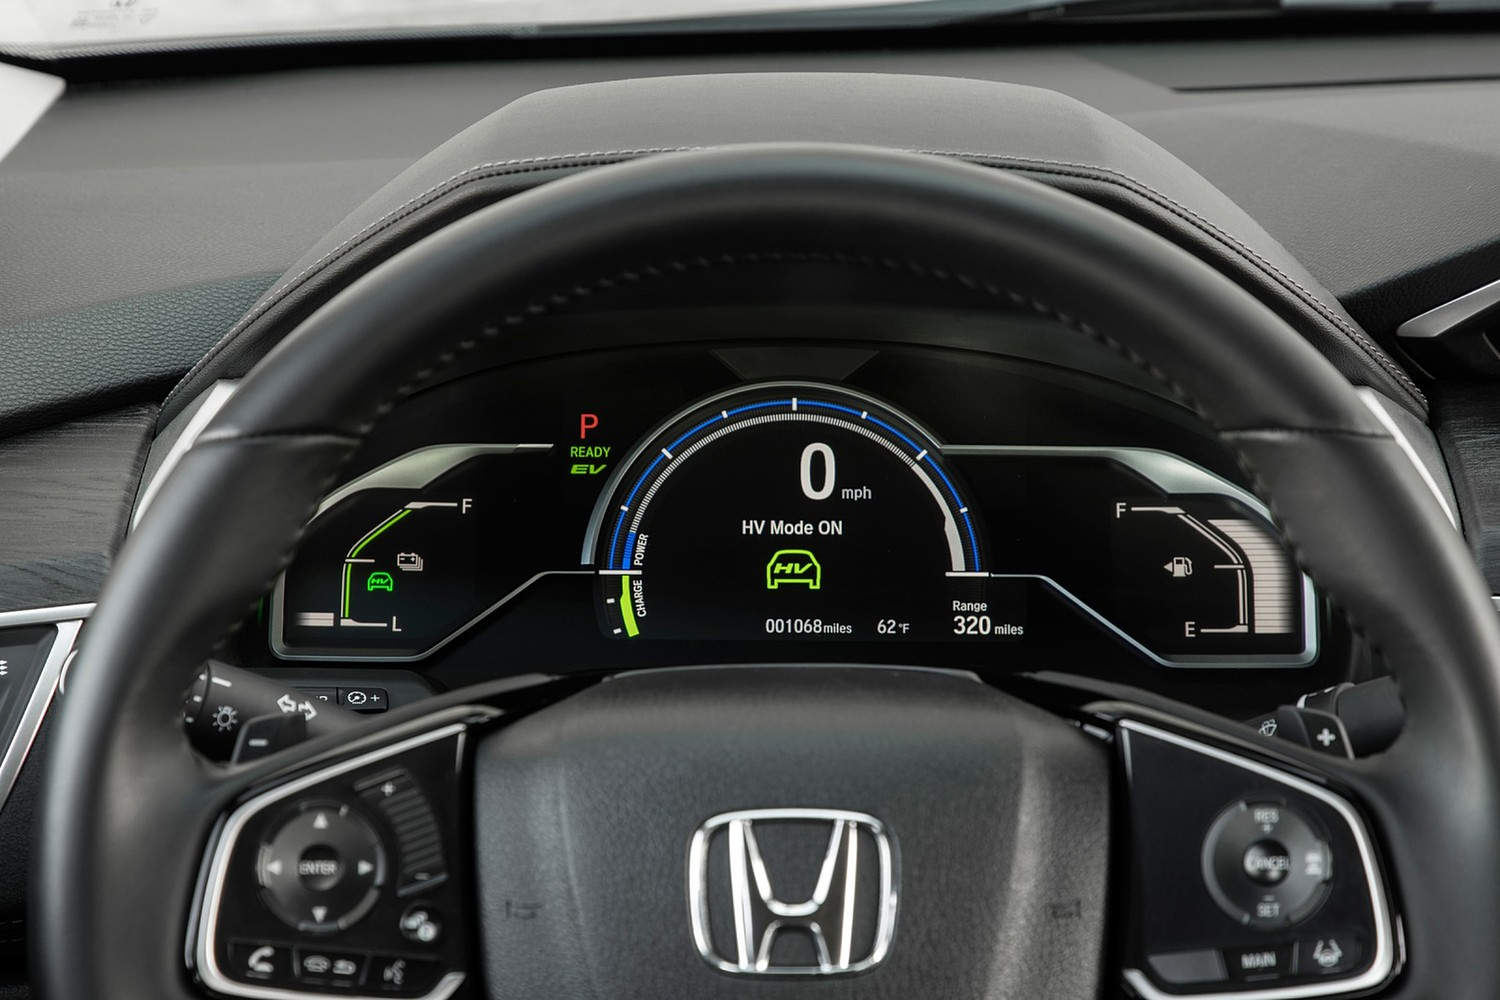 2018 Honda Clarity Touring Plug-In Hybrid Sedan Gauge Cluster